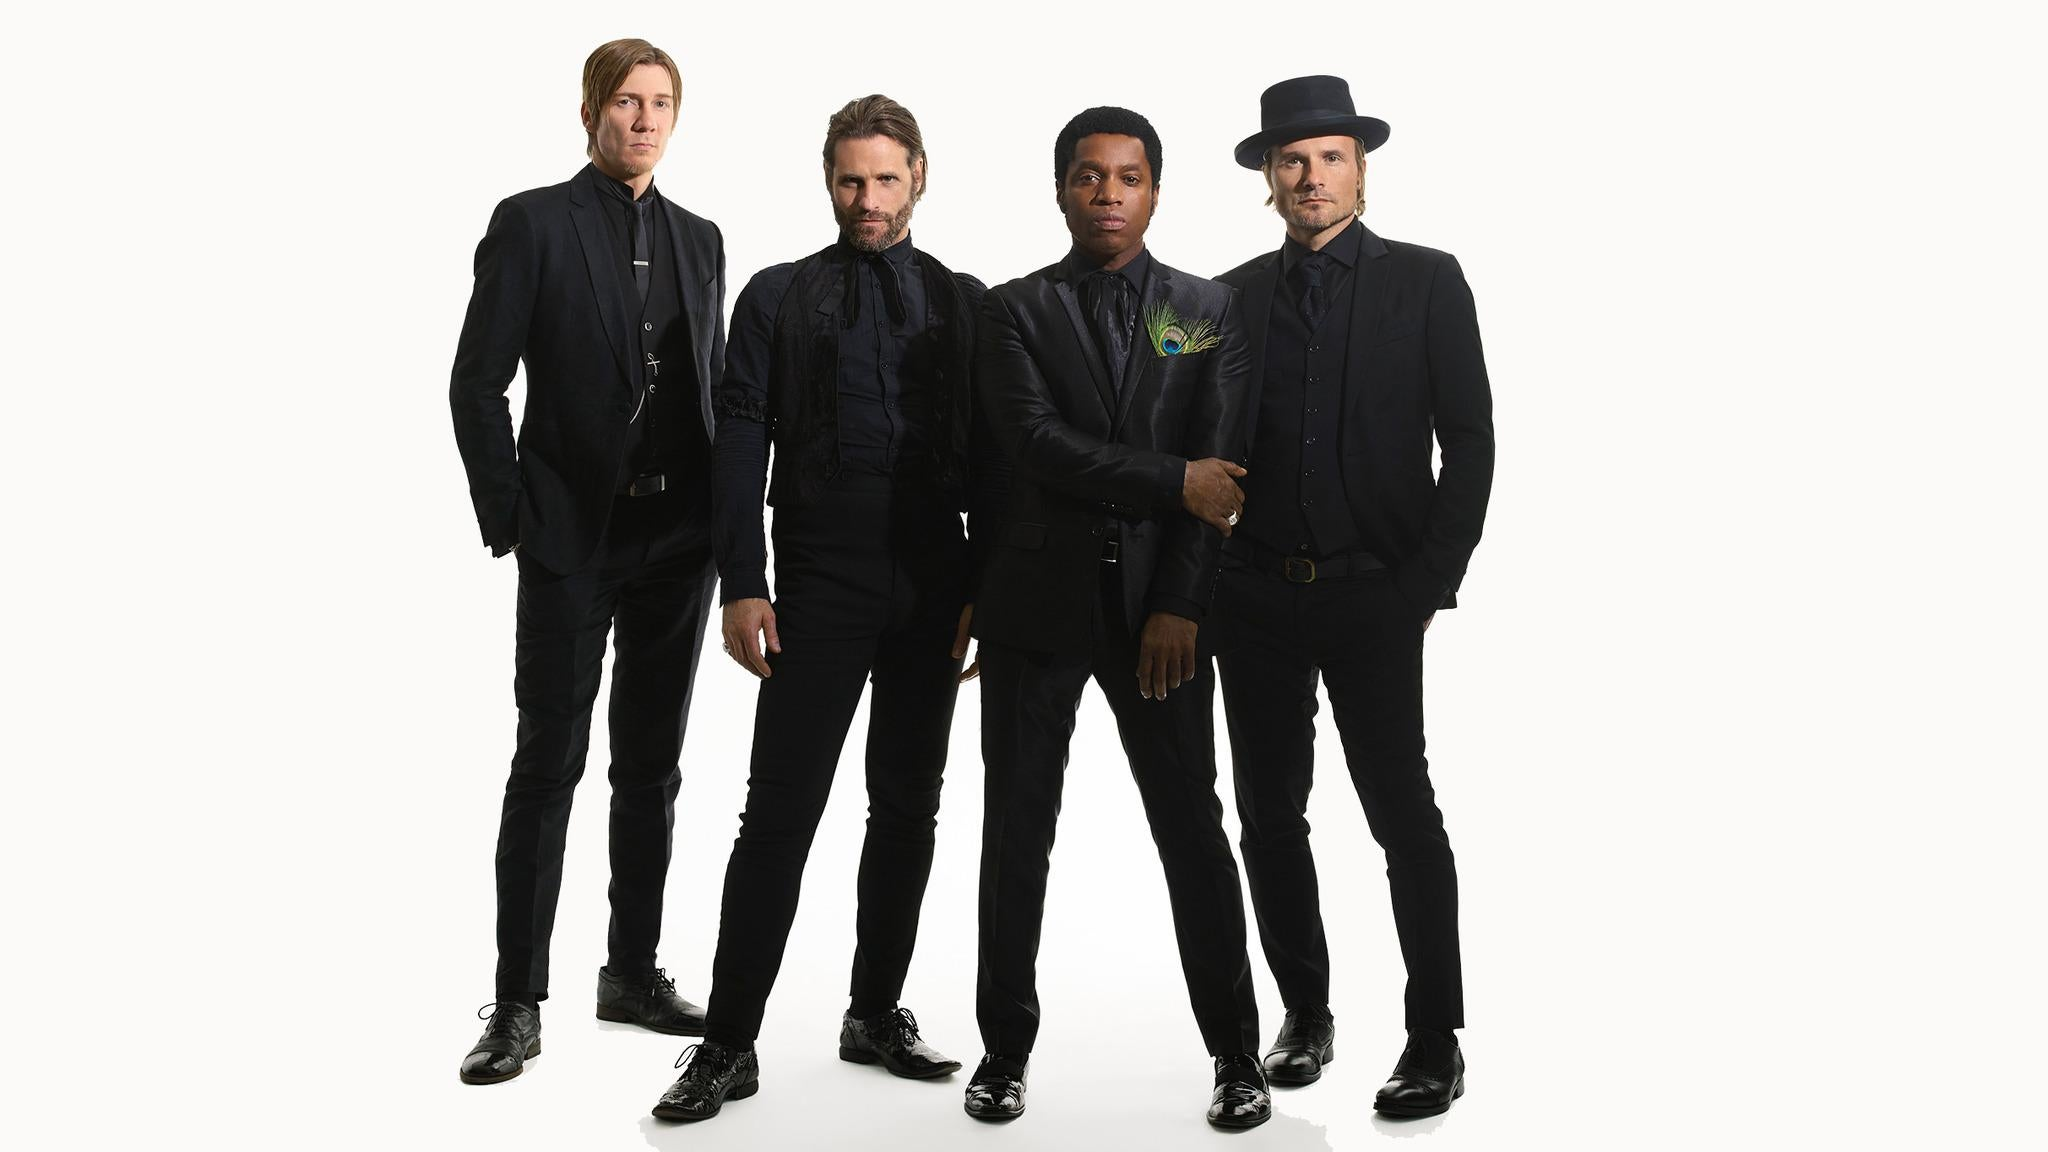 KCSN - 88.5 FM Presents Vintage Trouble at The Wiltern - Los Angeles, CA 90010